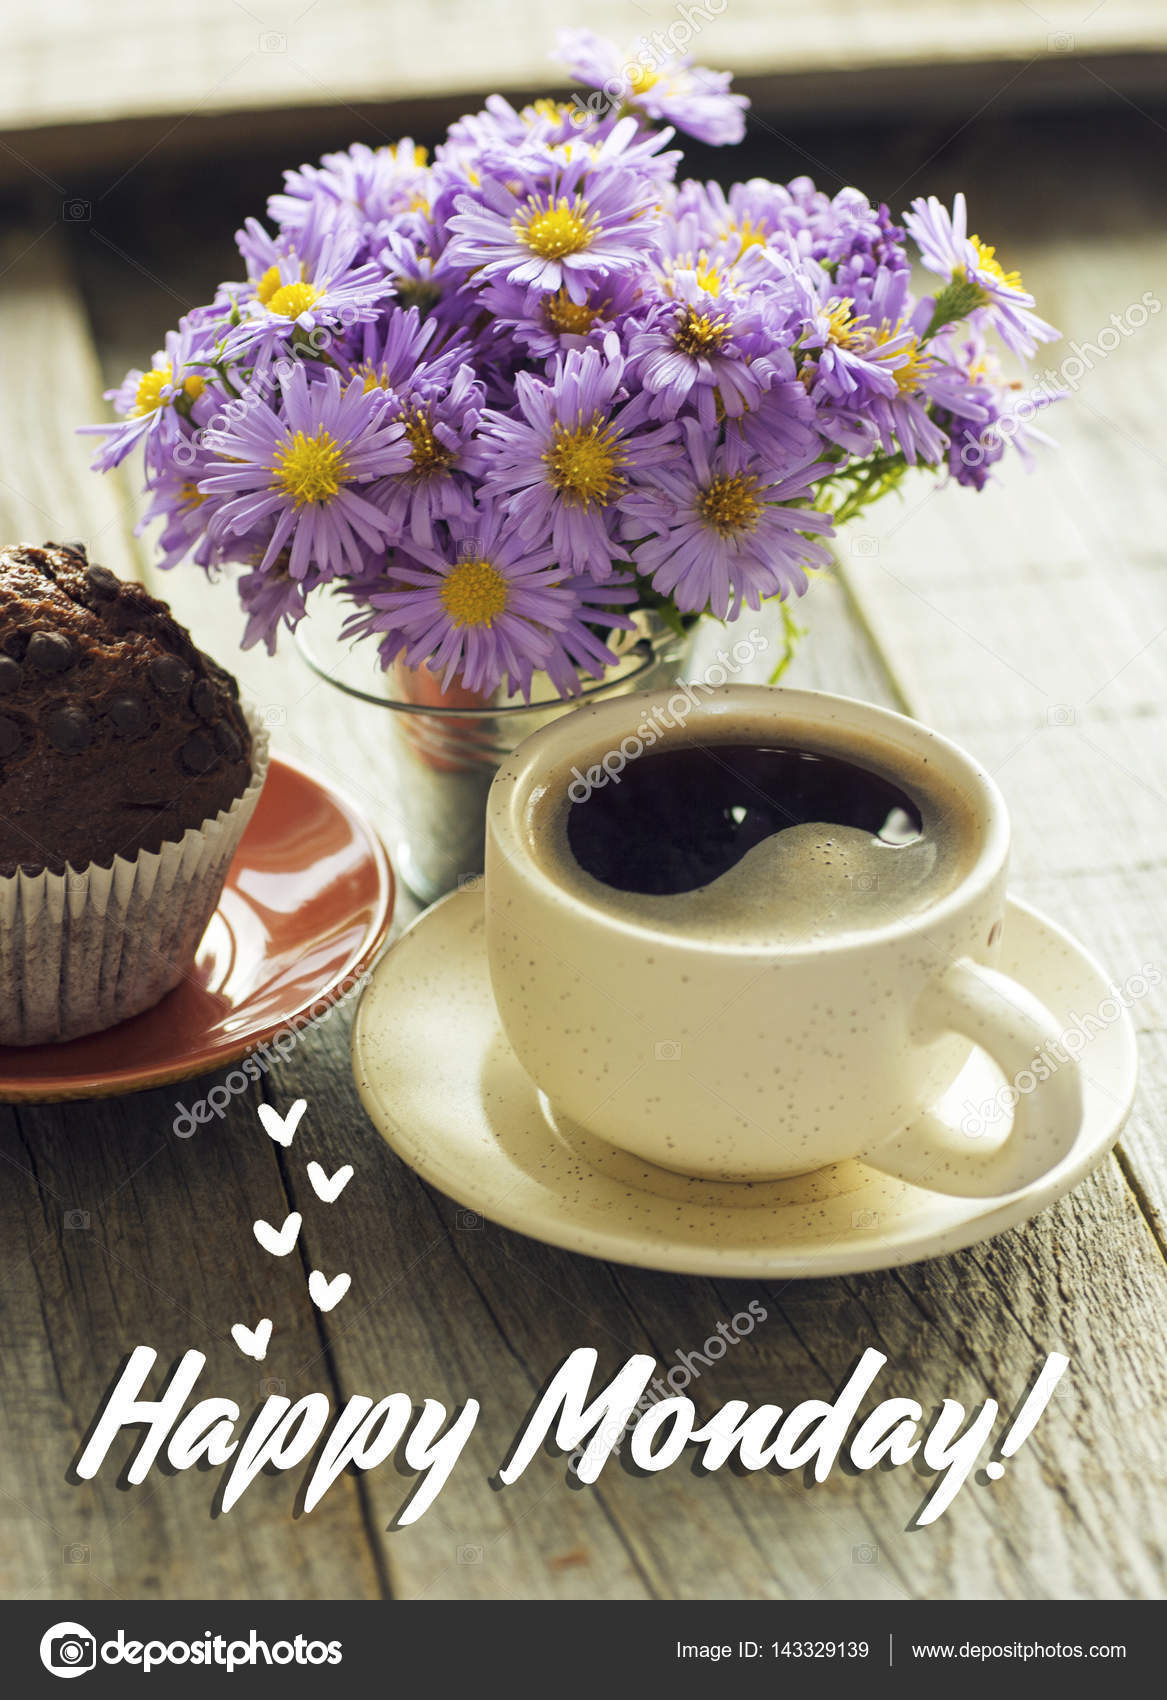 lundi 11 février 2019 Depositphotos_143329139-stock-photo-happy-monday-card-coffee-mug